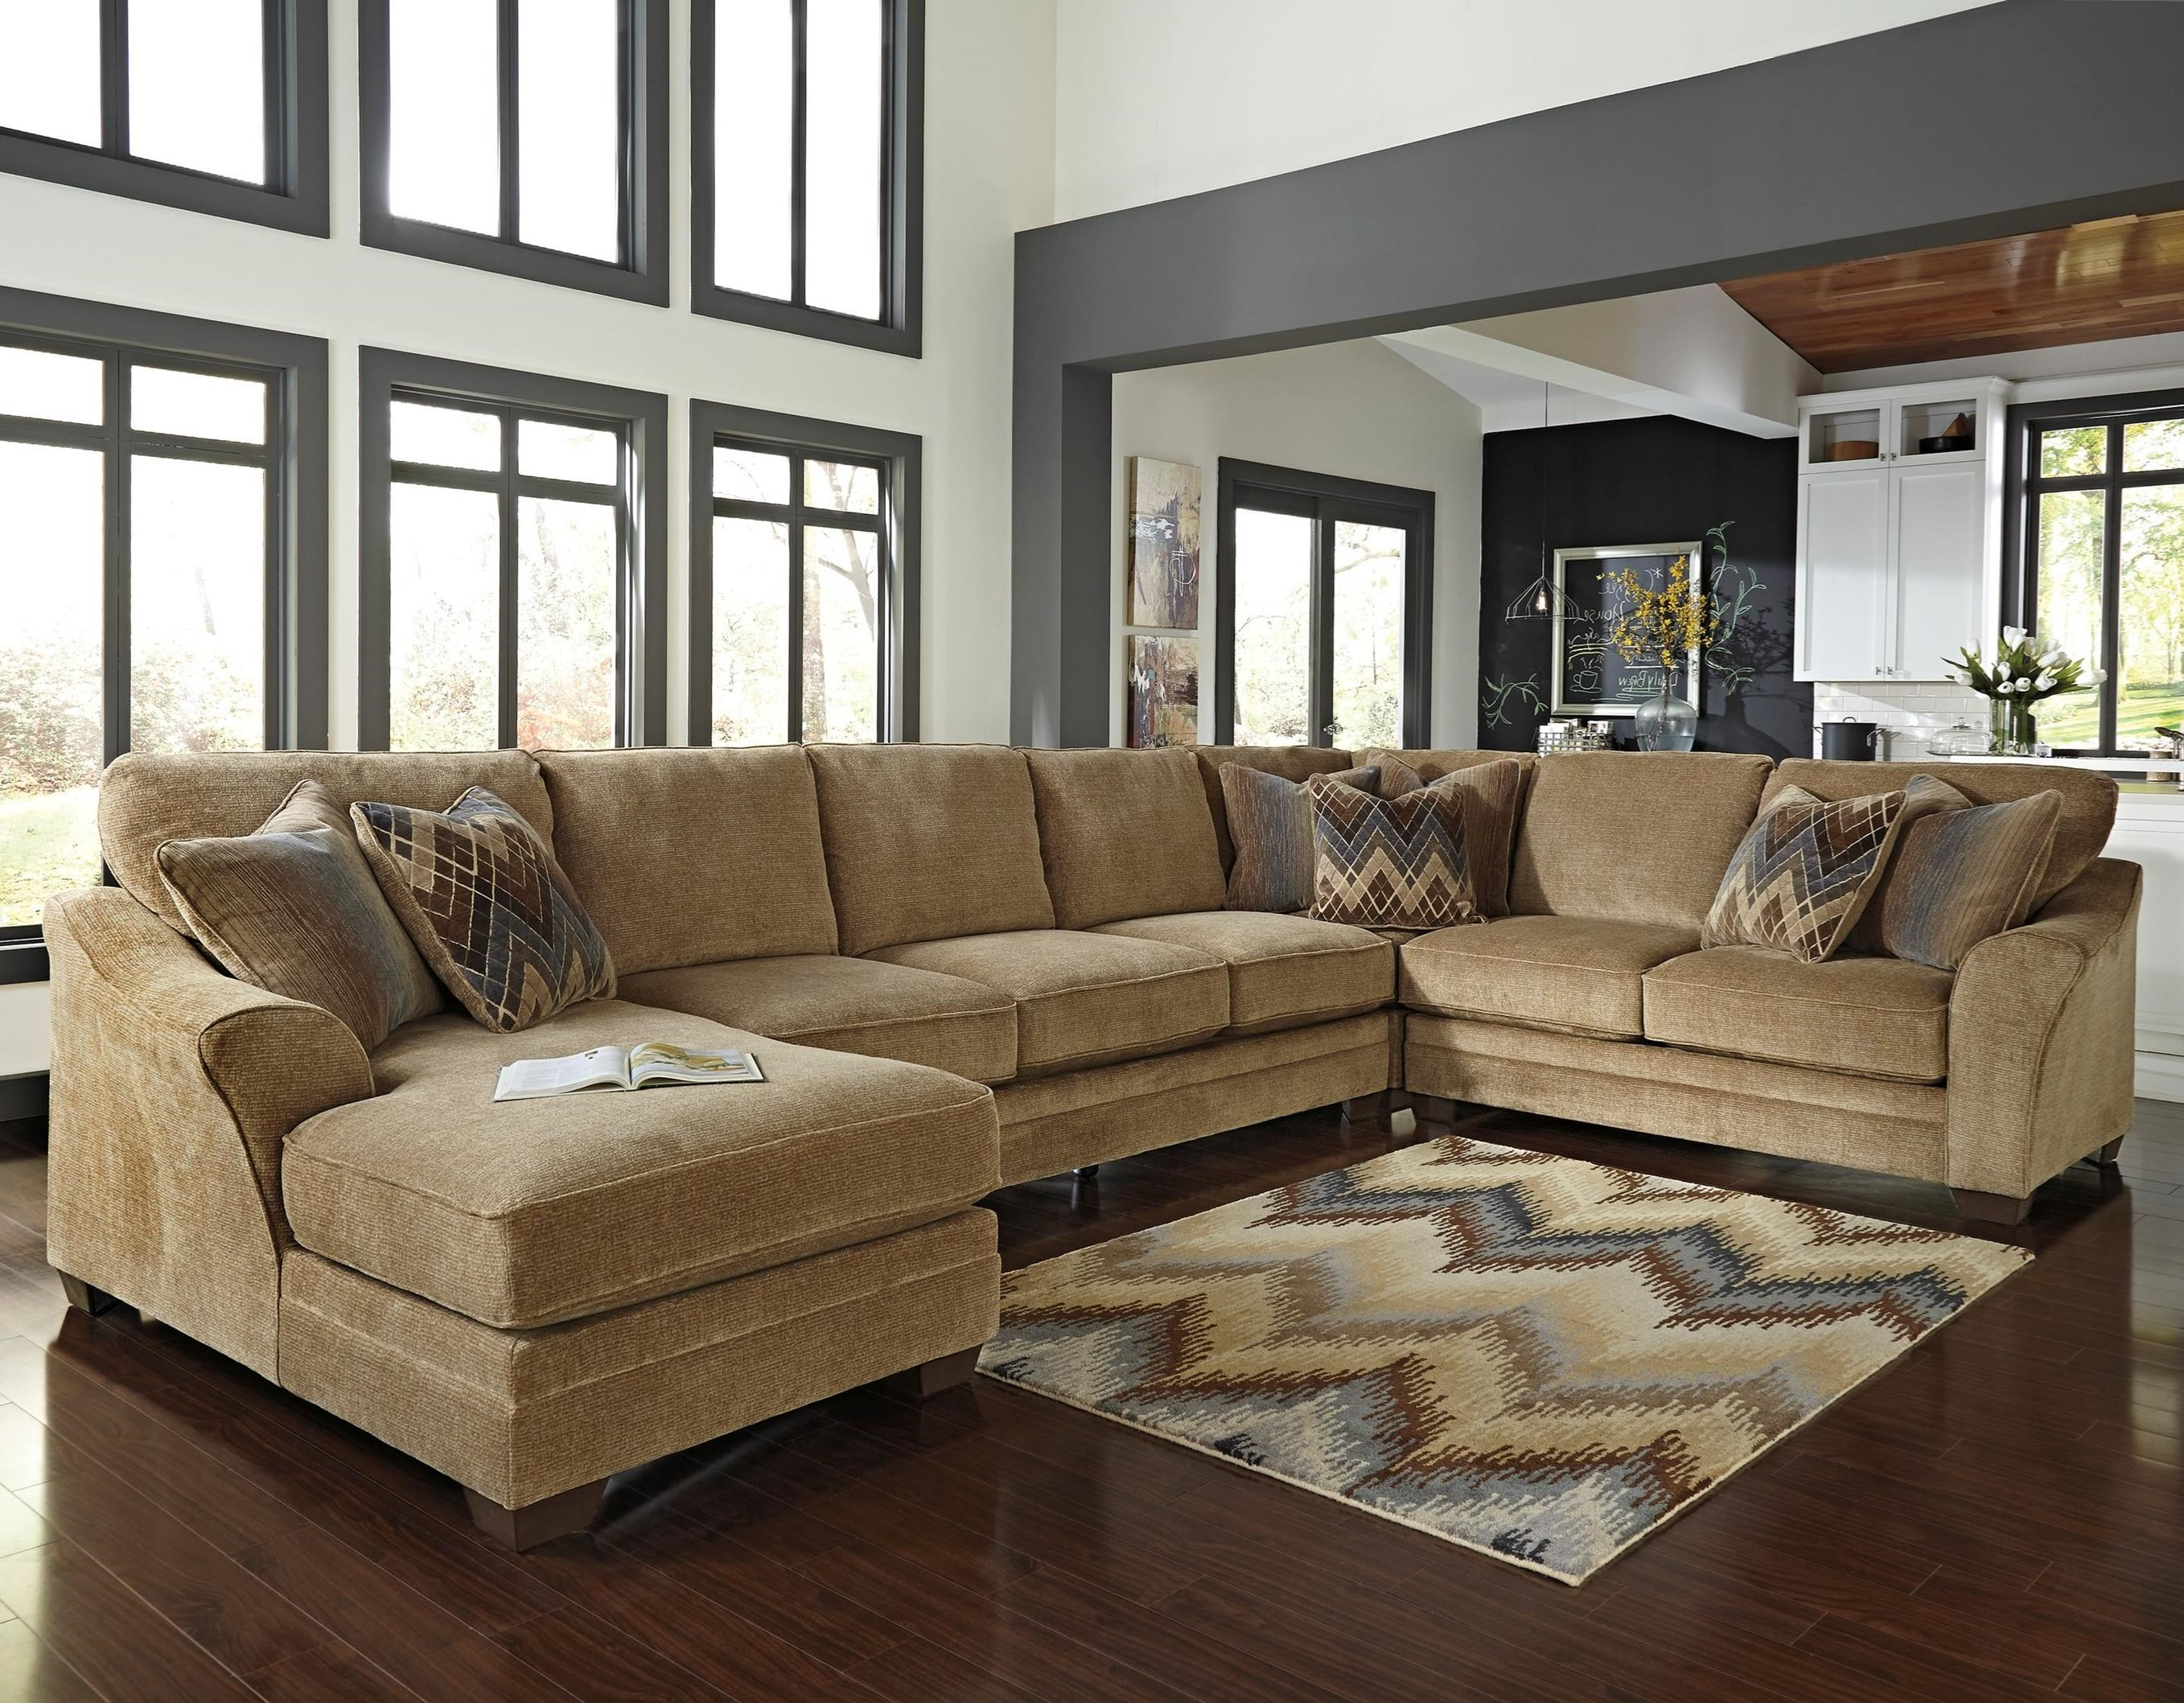 Benchcraft Lonsdale 4-Piece Sectional w/ Armless Sofa & Chaise - Item Number: 9211116+99+77+56